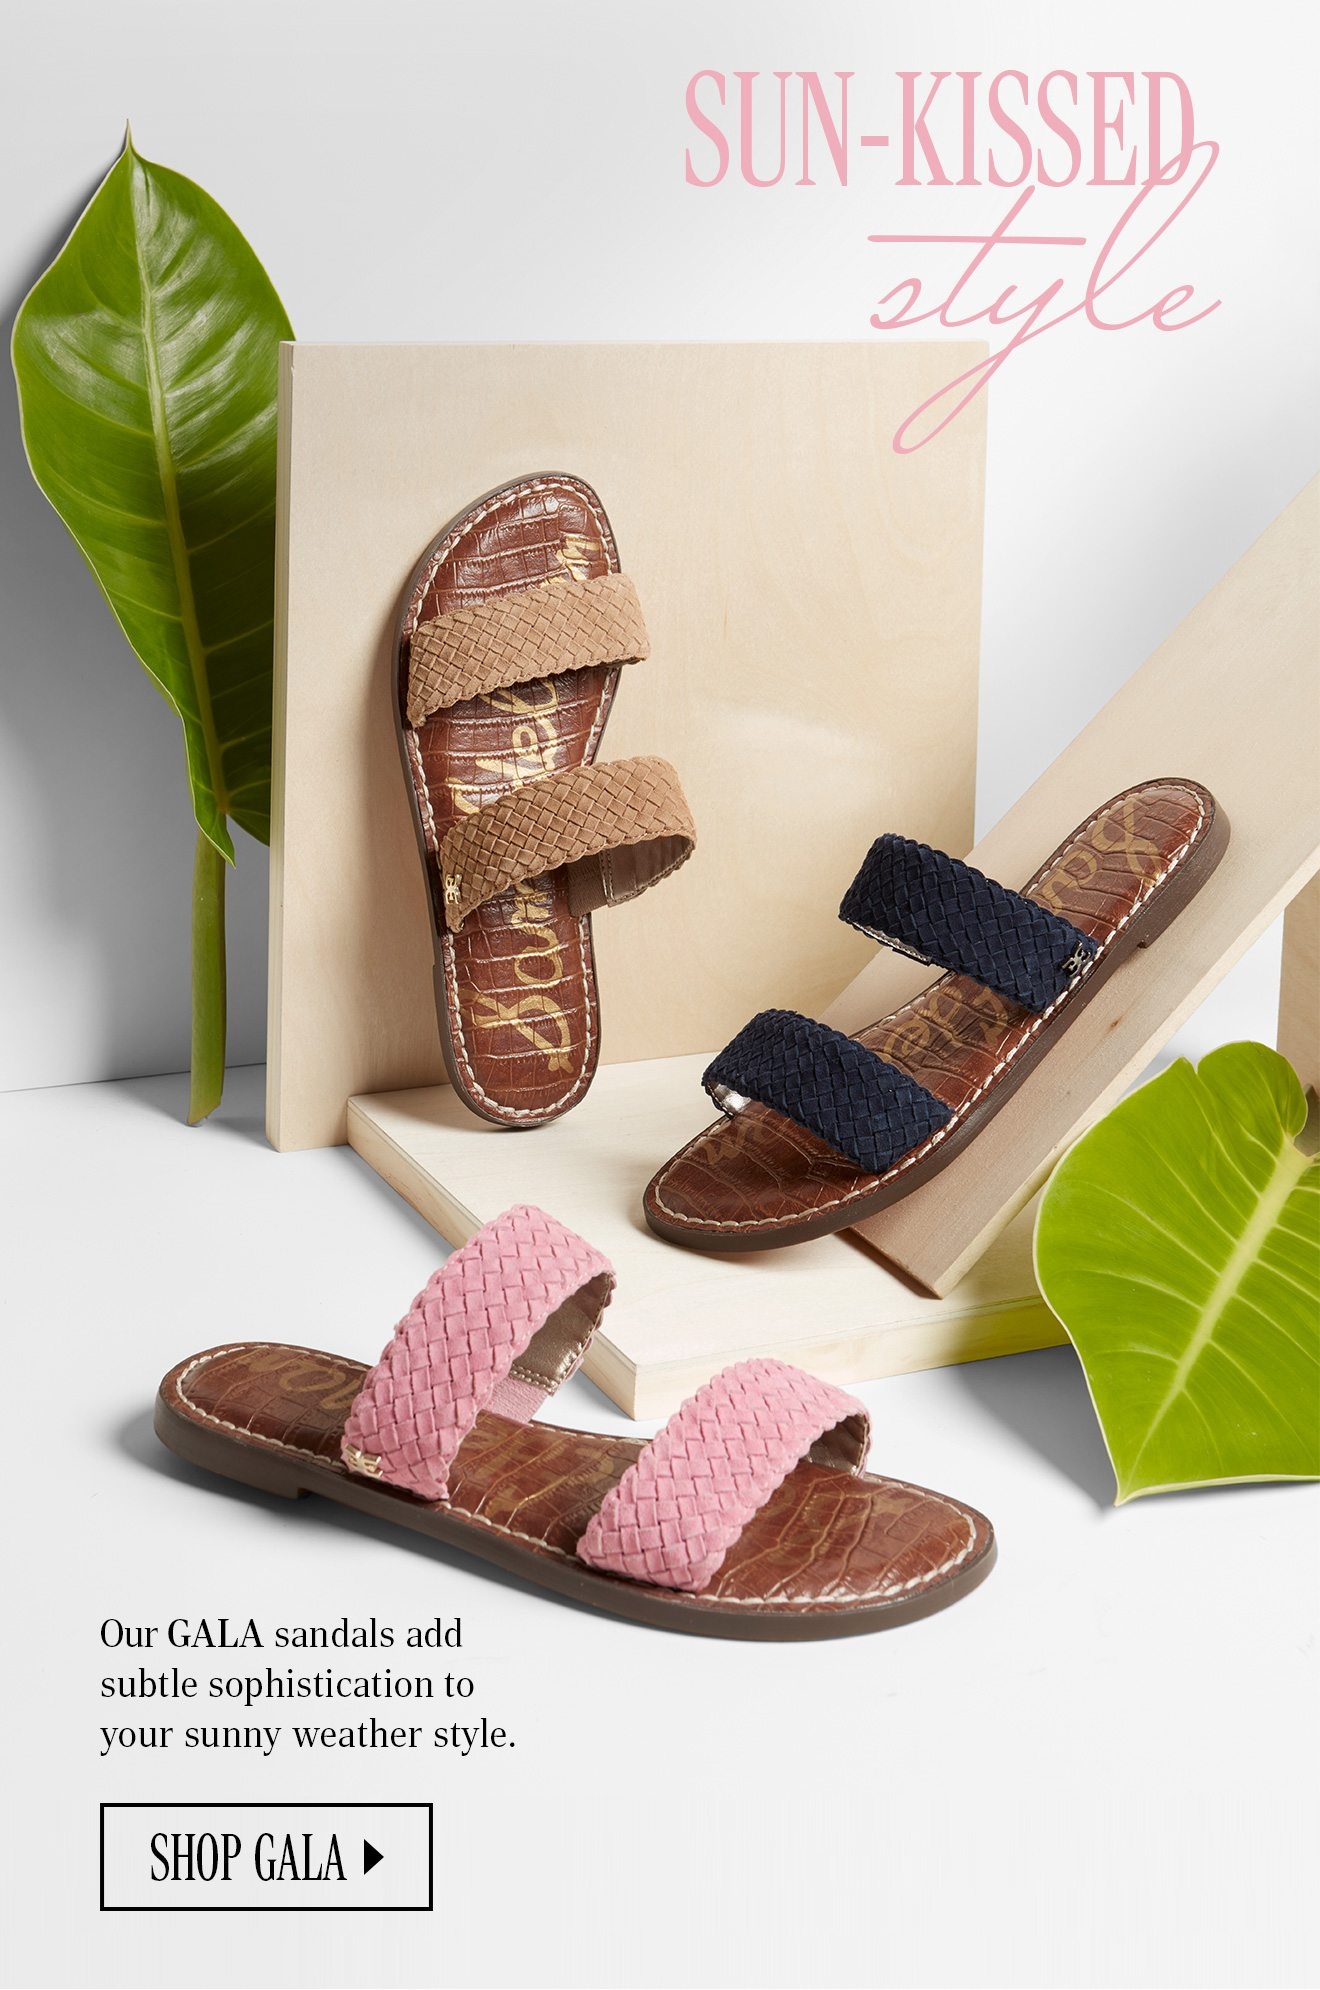 c91e73bf2 SUN-KISSED STYLE. Our GALA sandals add subtle sophistication toyour sunny  weather style.